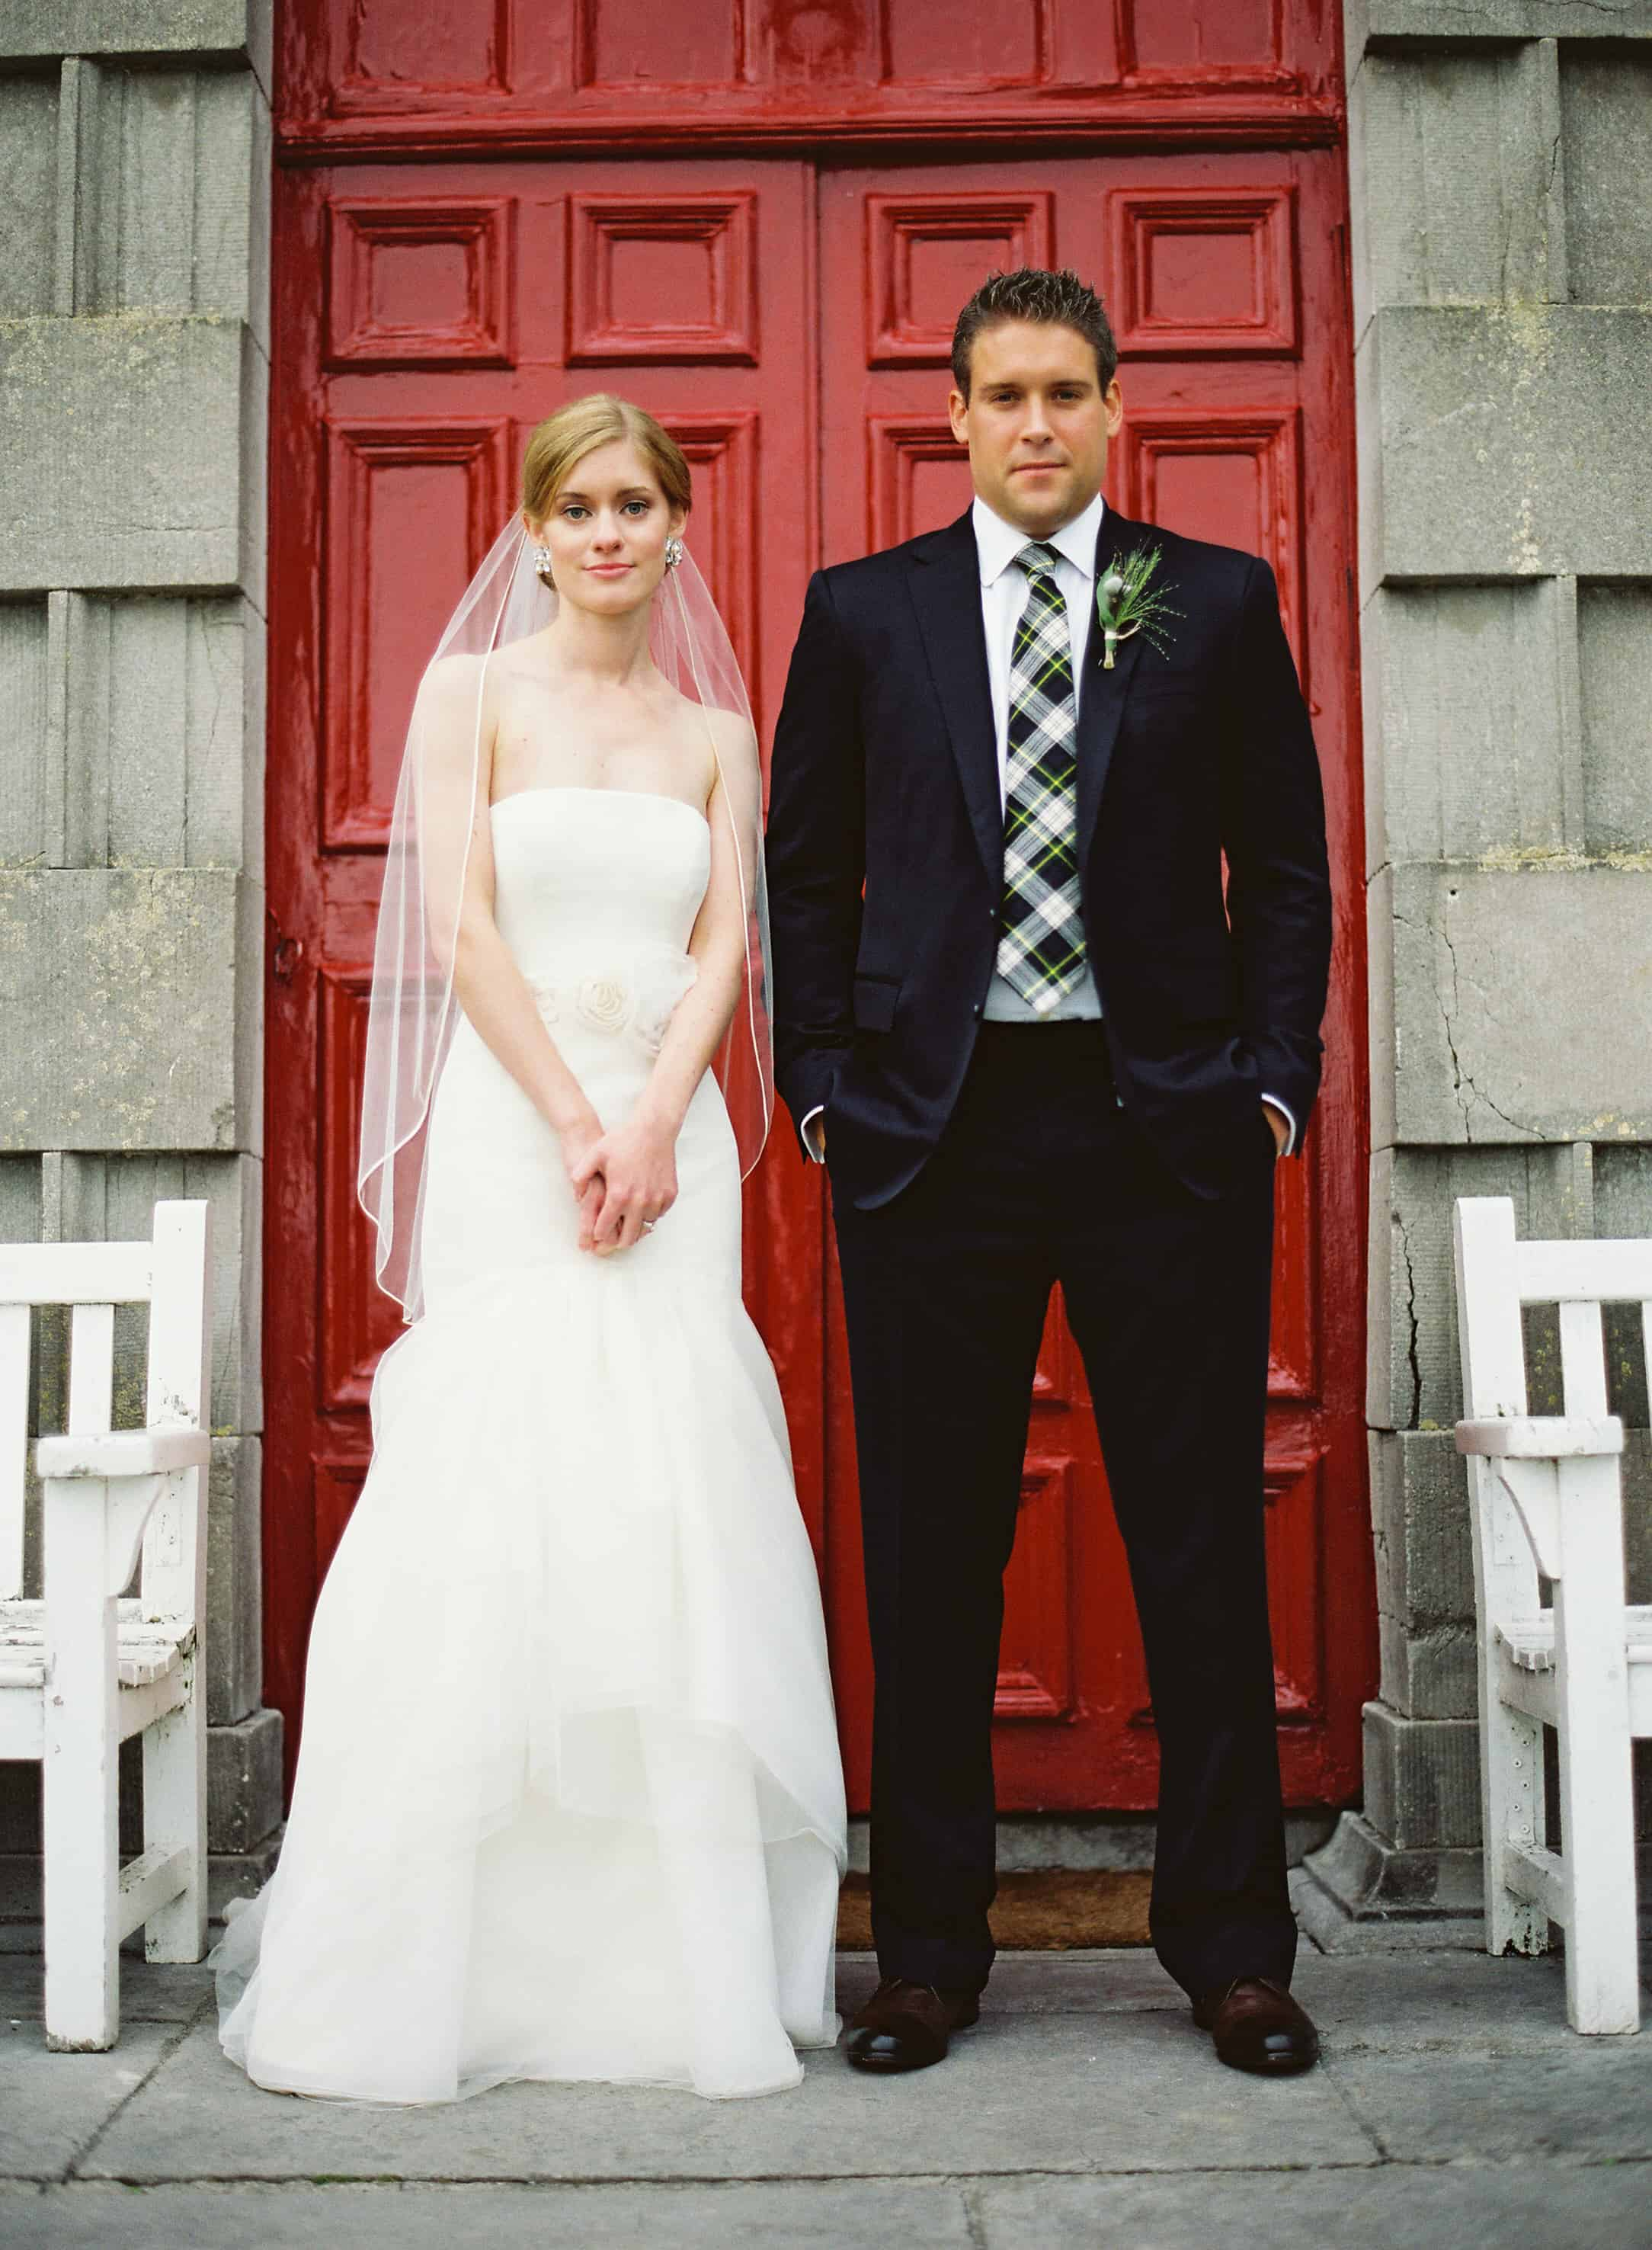 Bride and groom in front of a red door